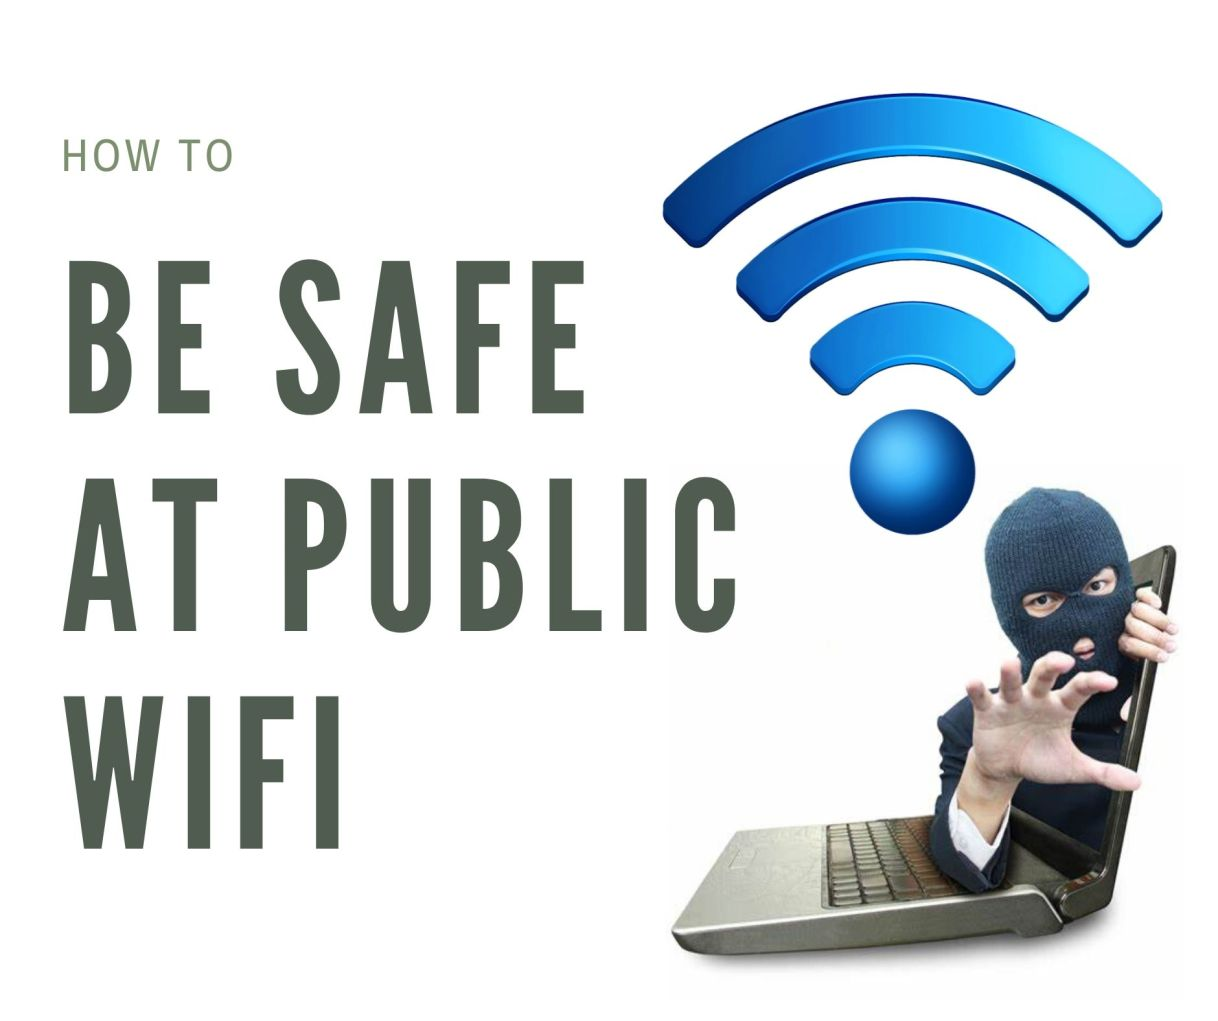 How to be safe at public Wifi